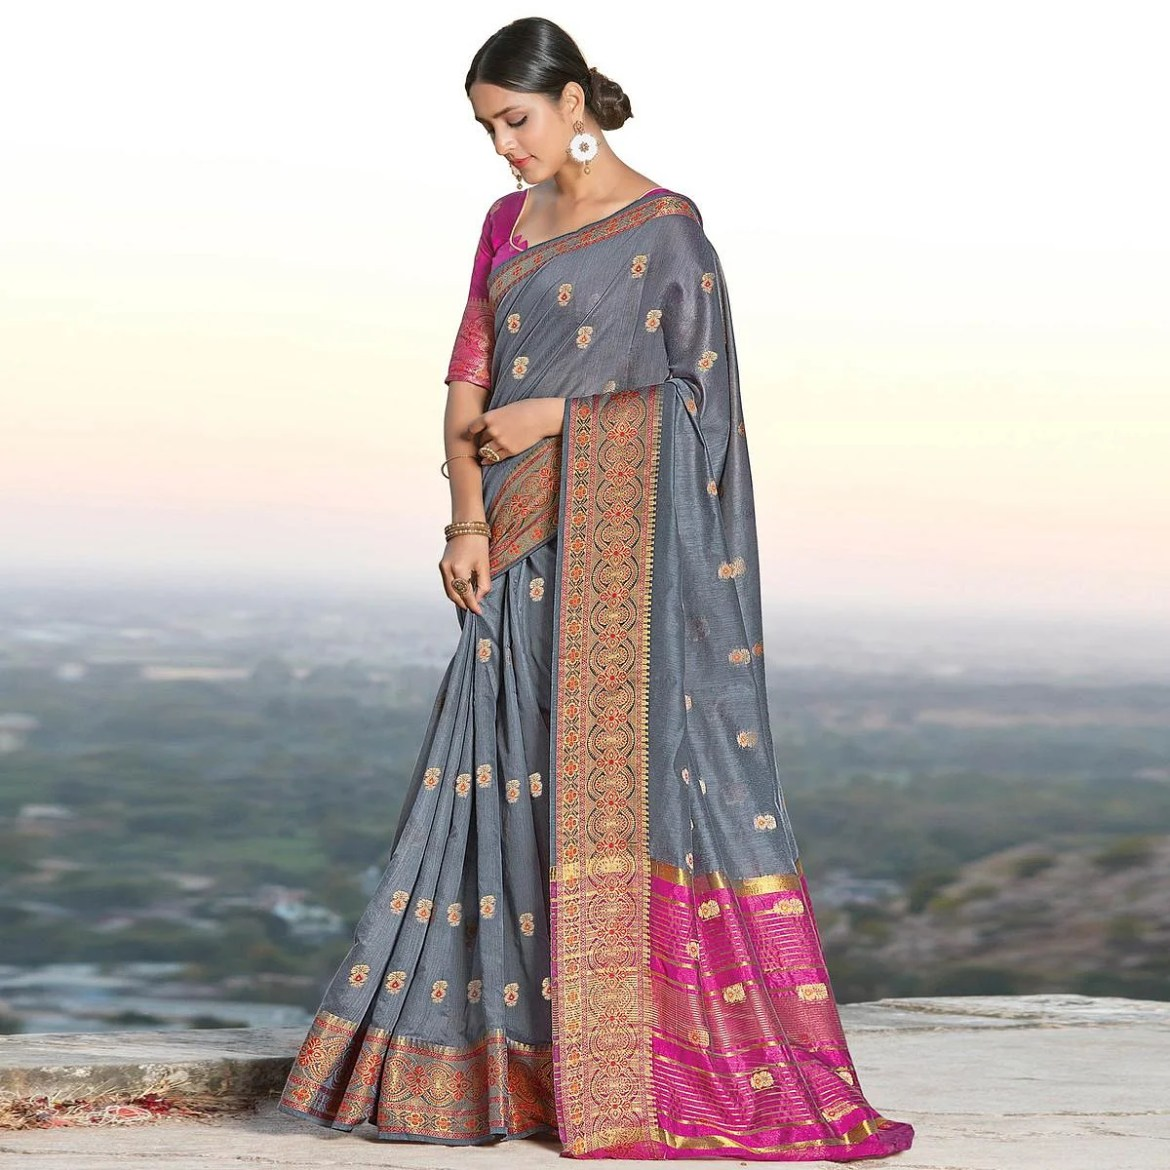 Exclusive Grey Colored Festive Wear Woven Cotton Handloom Saree